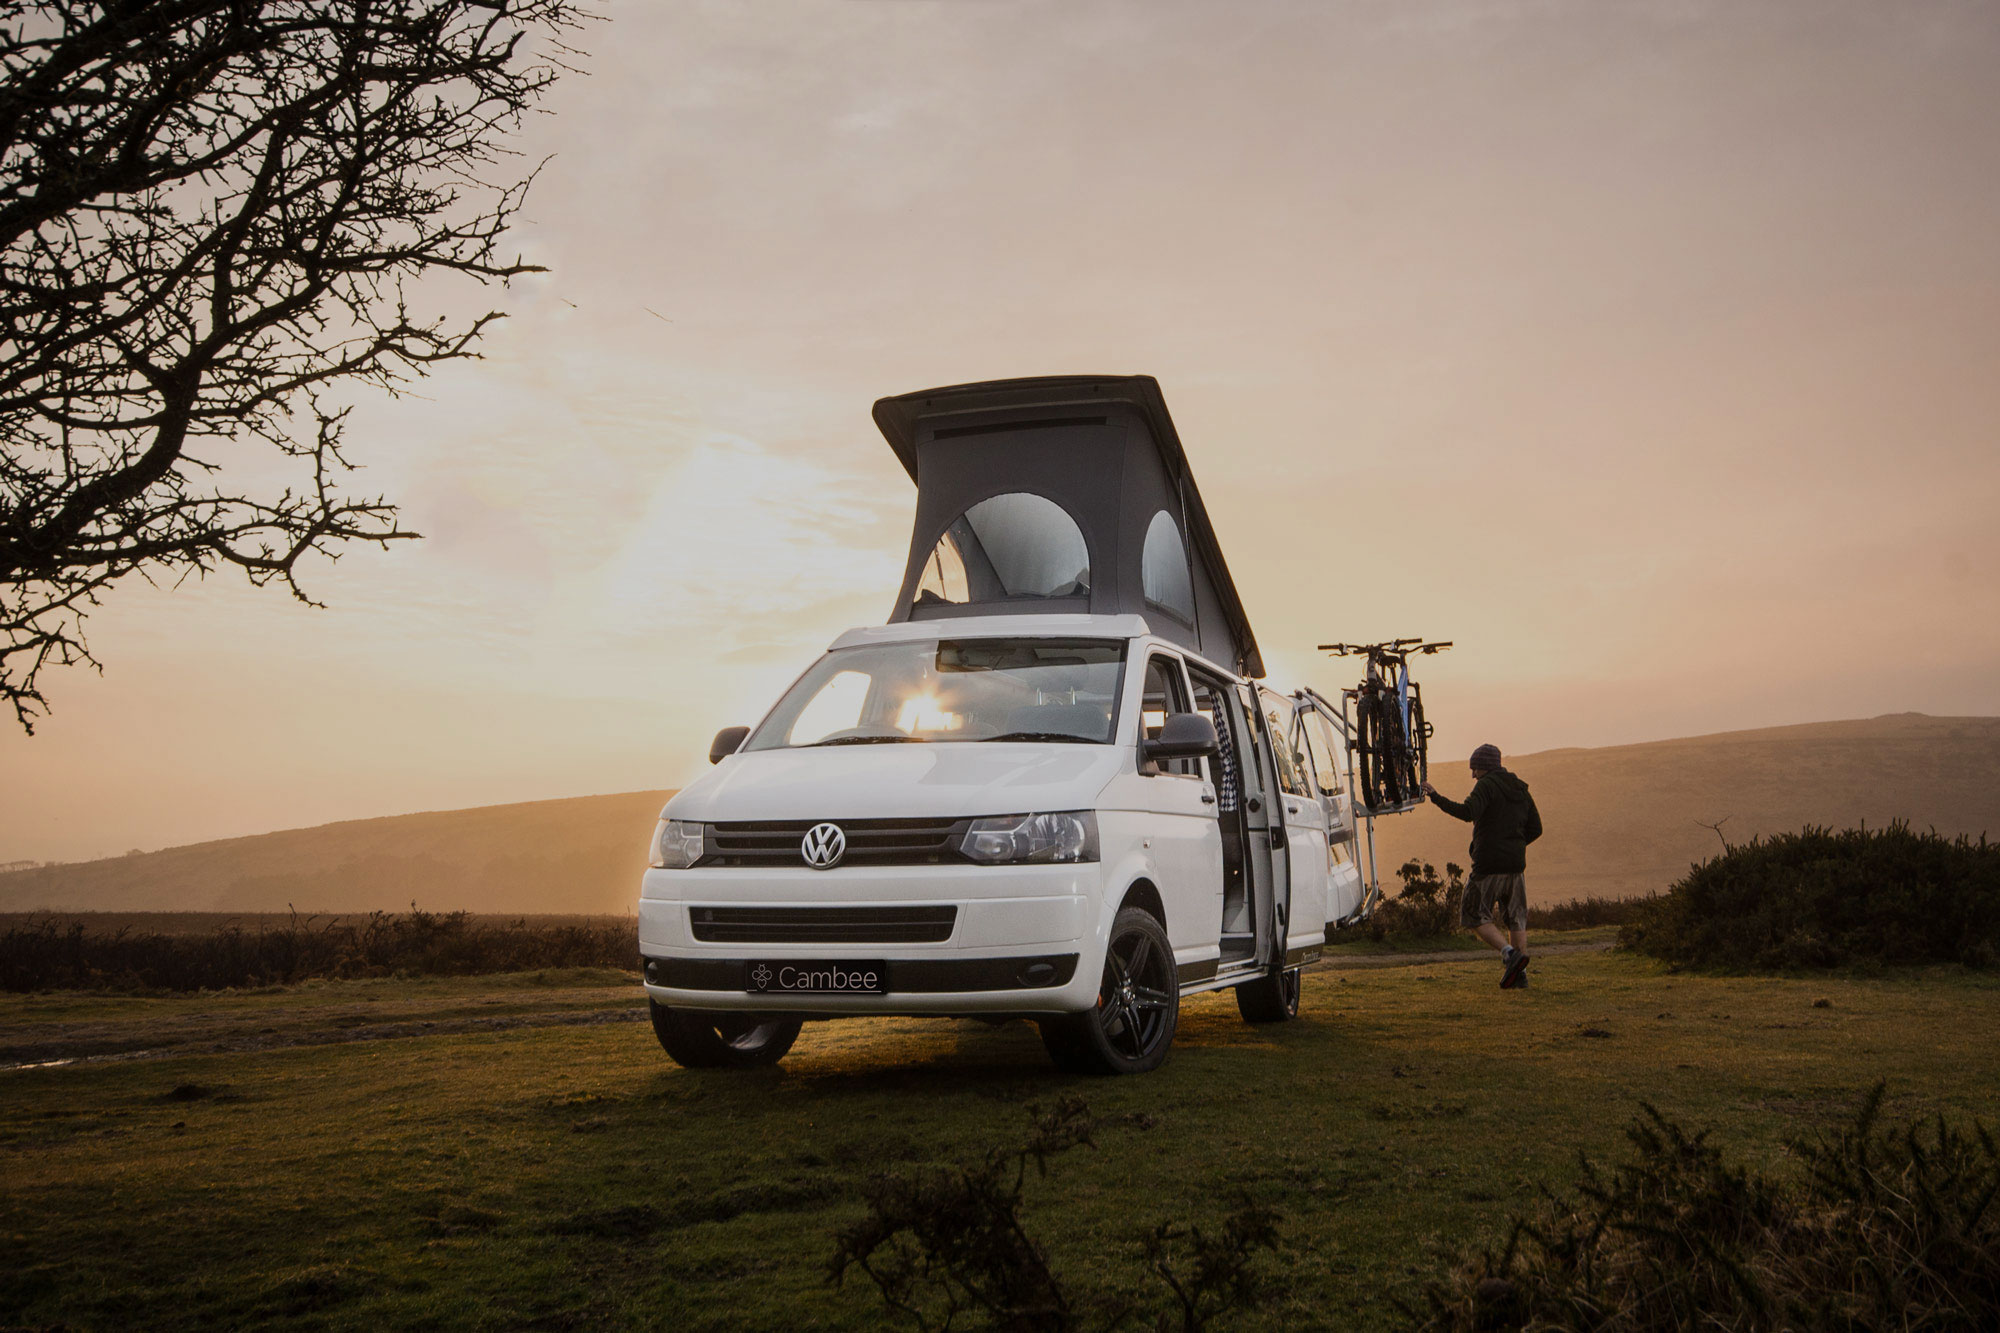 White T5 VW campervan parked by in nature, with bike rack with the roof elevated and side door open during beautiful sunset